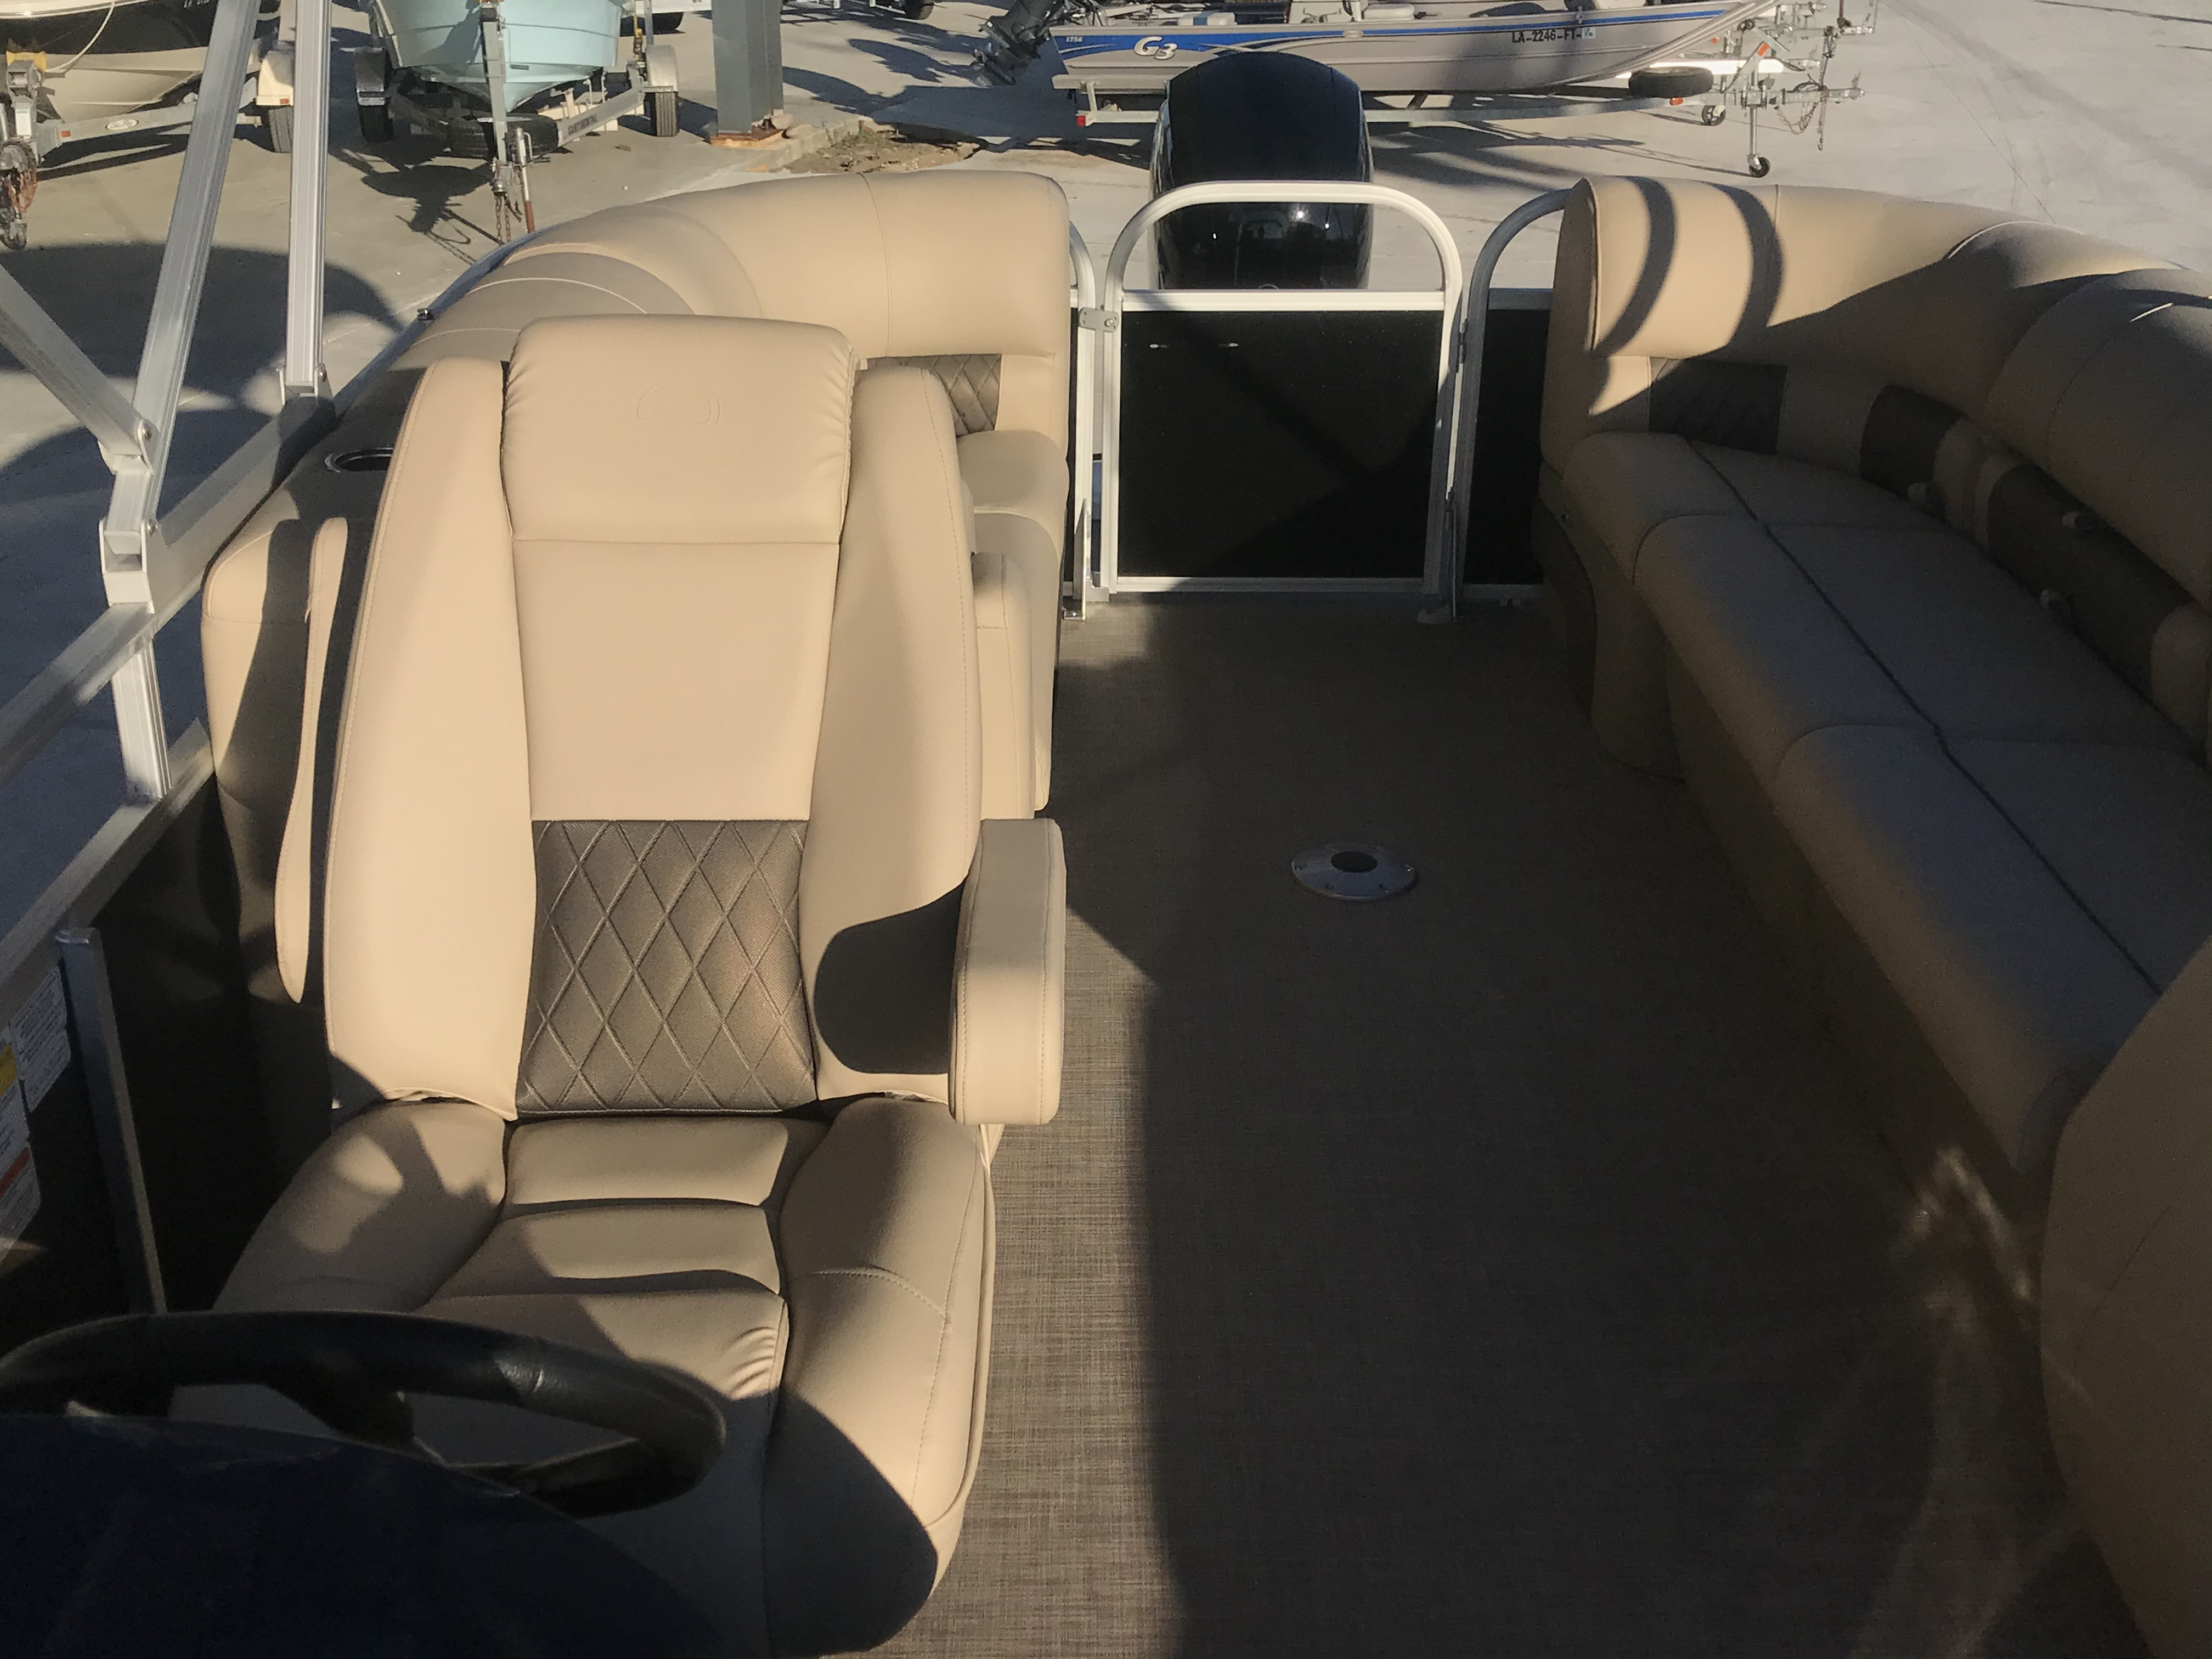 2022 Sun Tracker boat for sale, model of the boat is 22 Party Barge DLX & Image # 2 of 15